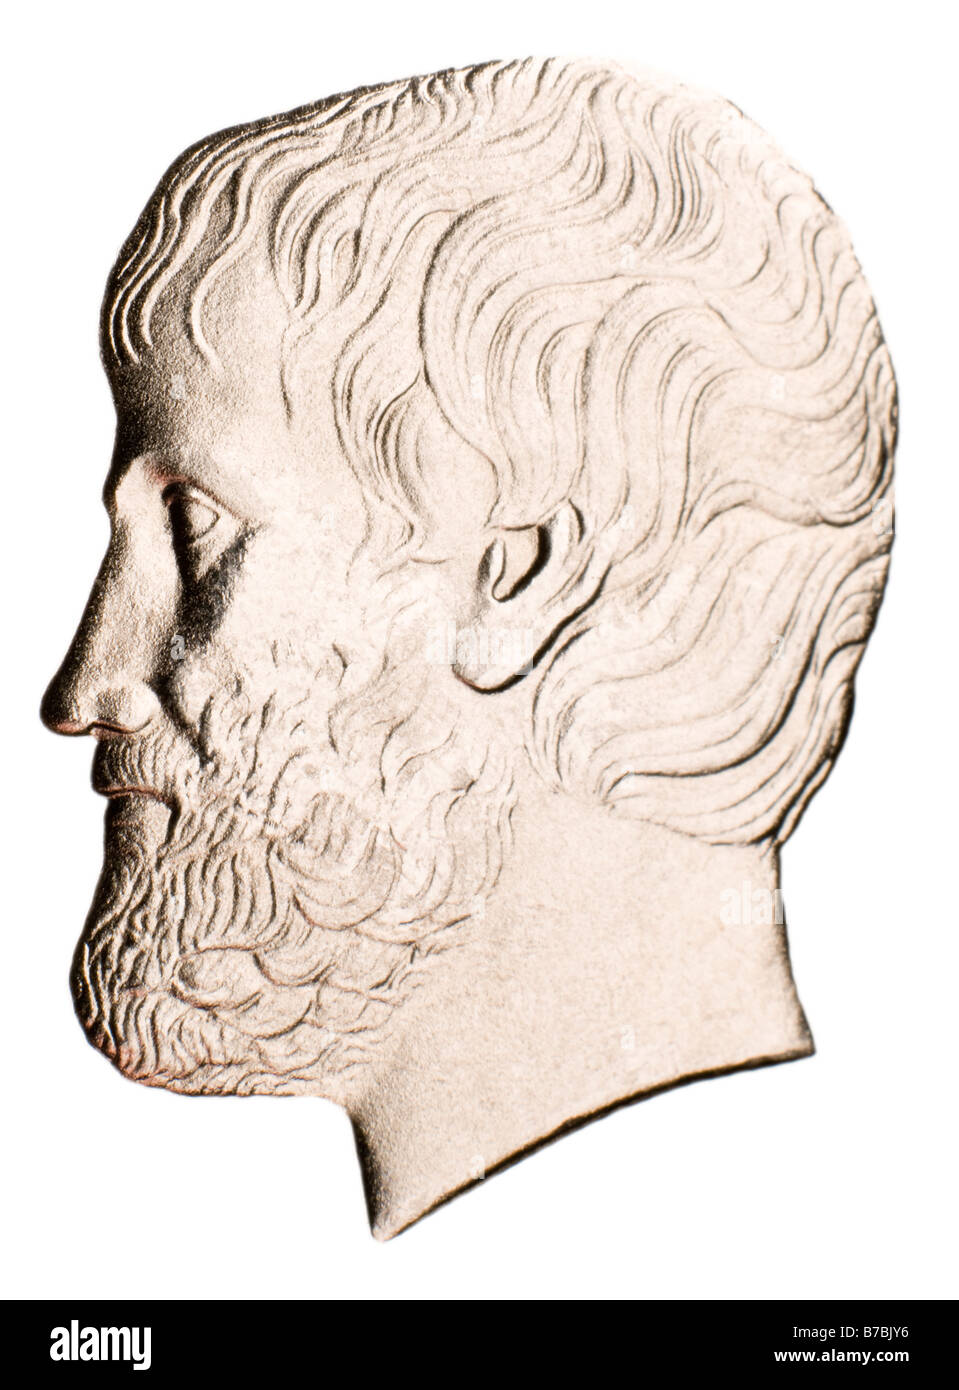 greek philosopher cut out stock images pictures alamy profile portrait of aristotle from greek 5 drachma coin of 2000 stock image